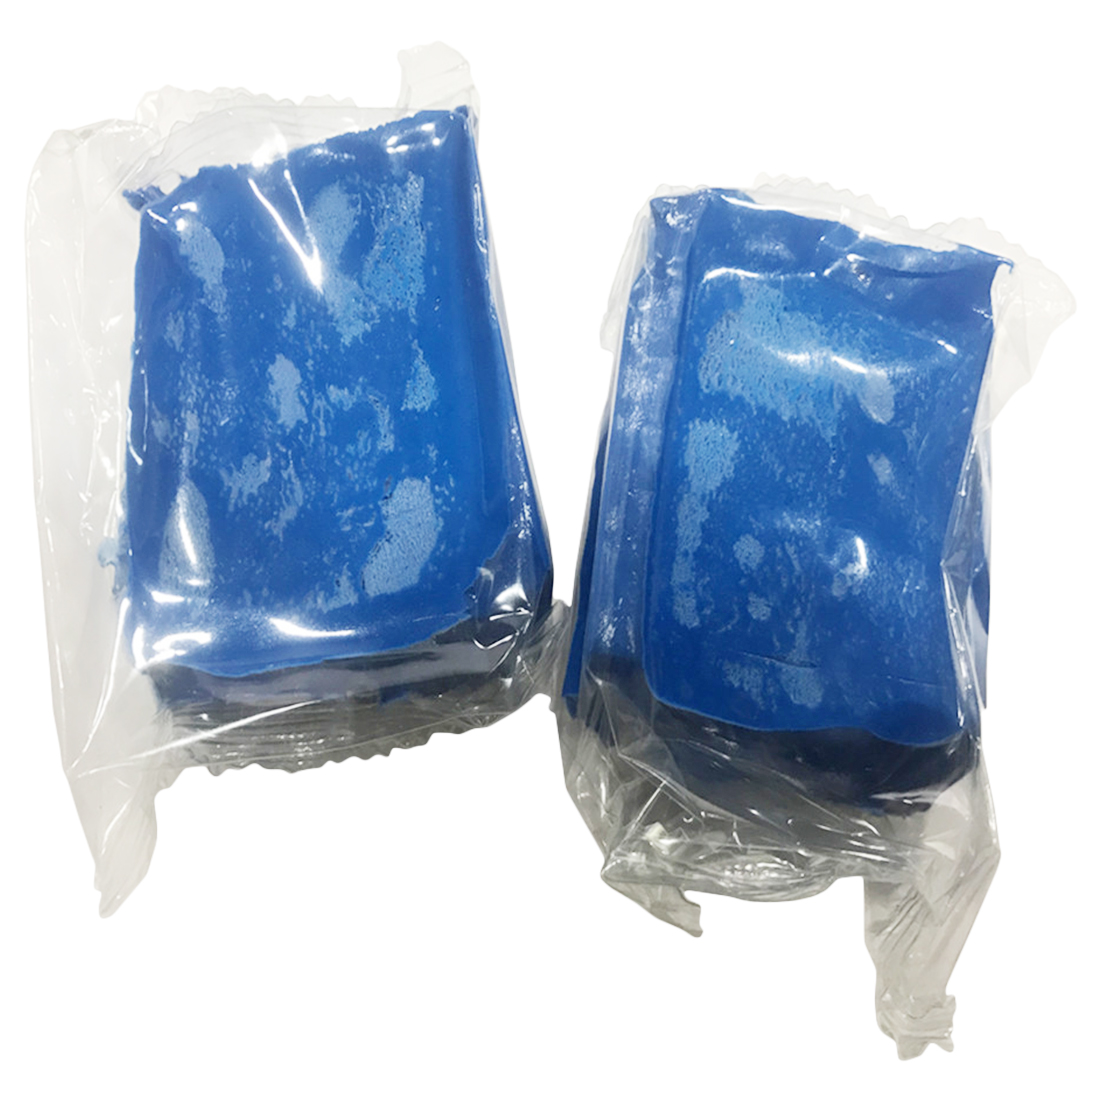 (1pieces) Car Washer Blue Car Clay Bar 100g Auto Detailing Magic Claybar Cleaner Car Accessiores Sponges